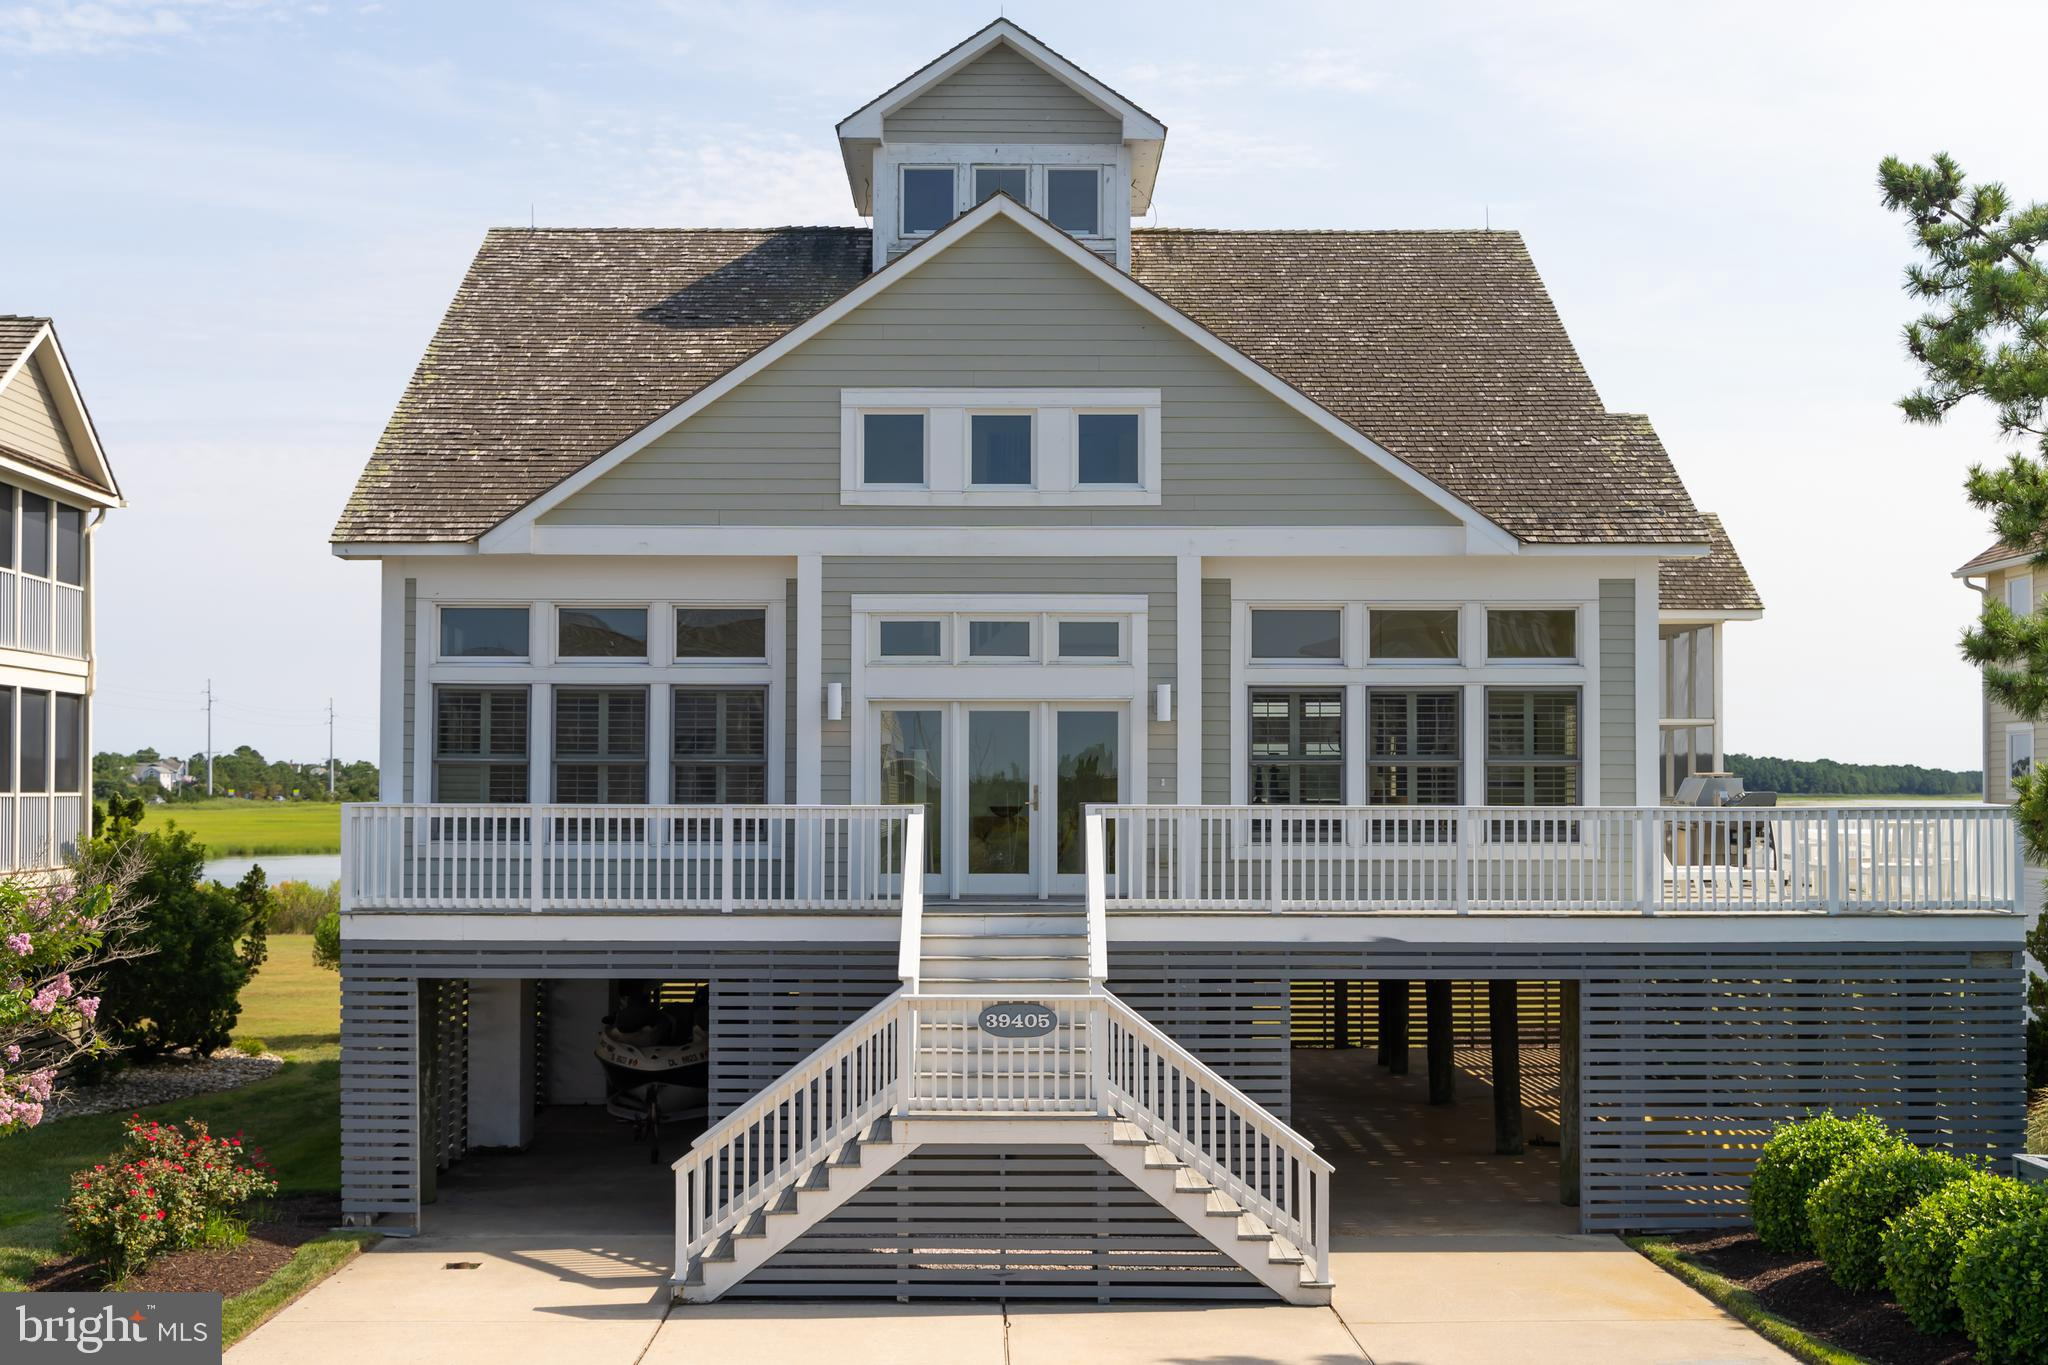 Coastal-style living at its best! This custom-built waterfront home is nestled in the sought-after w